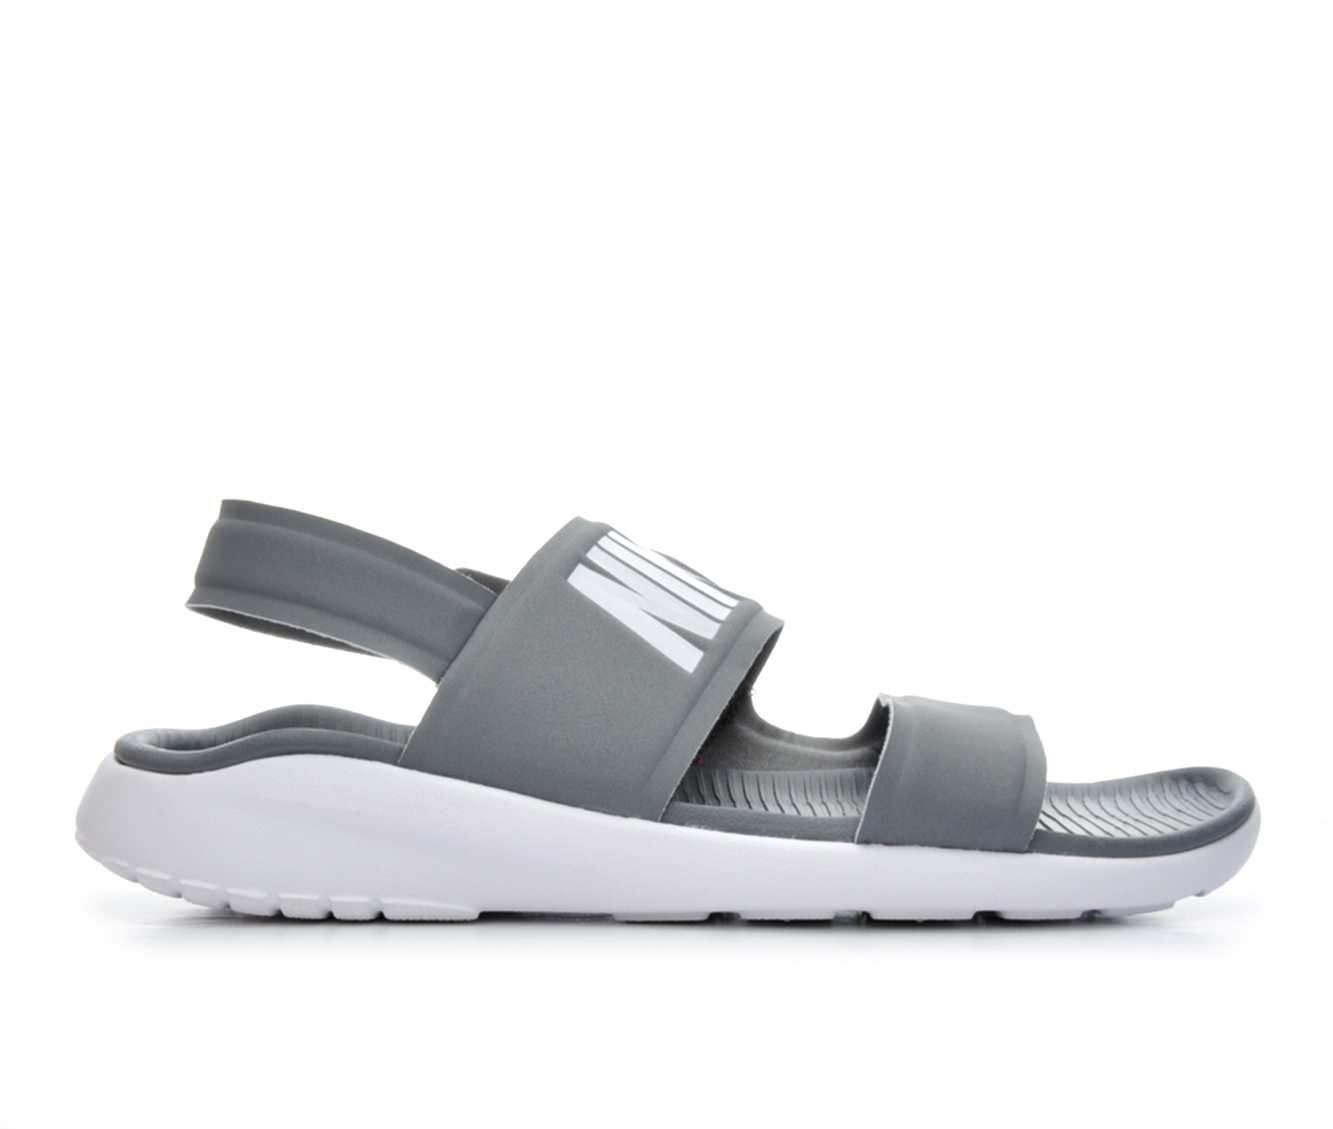 nike slides for women